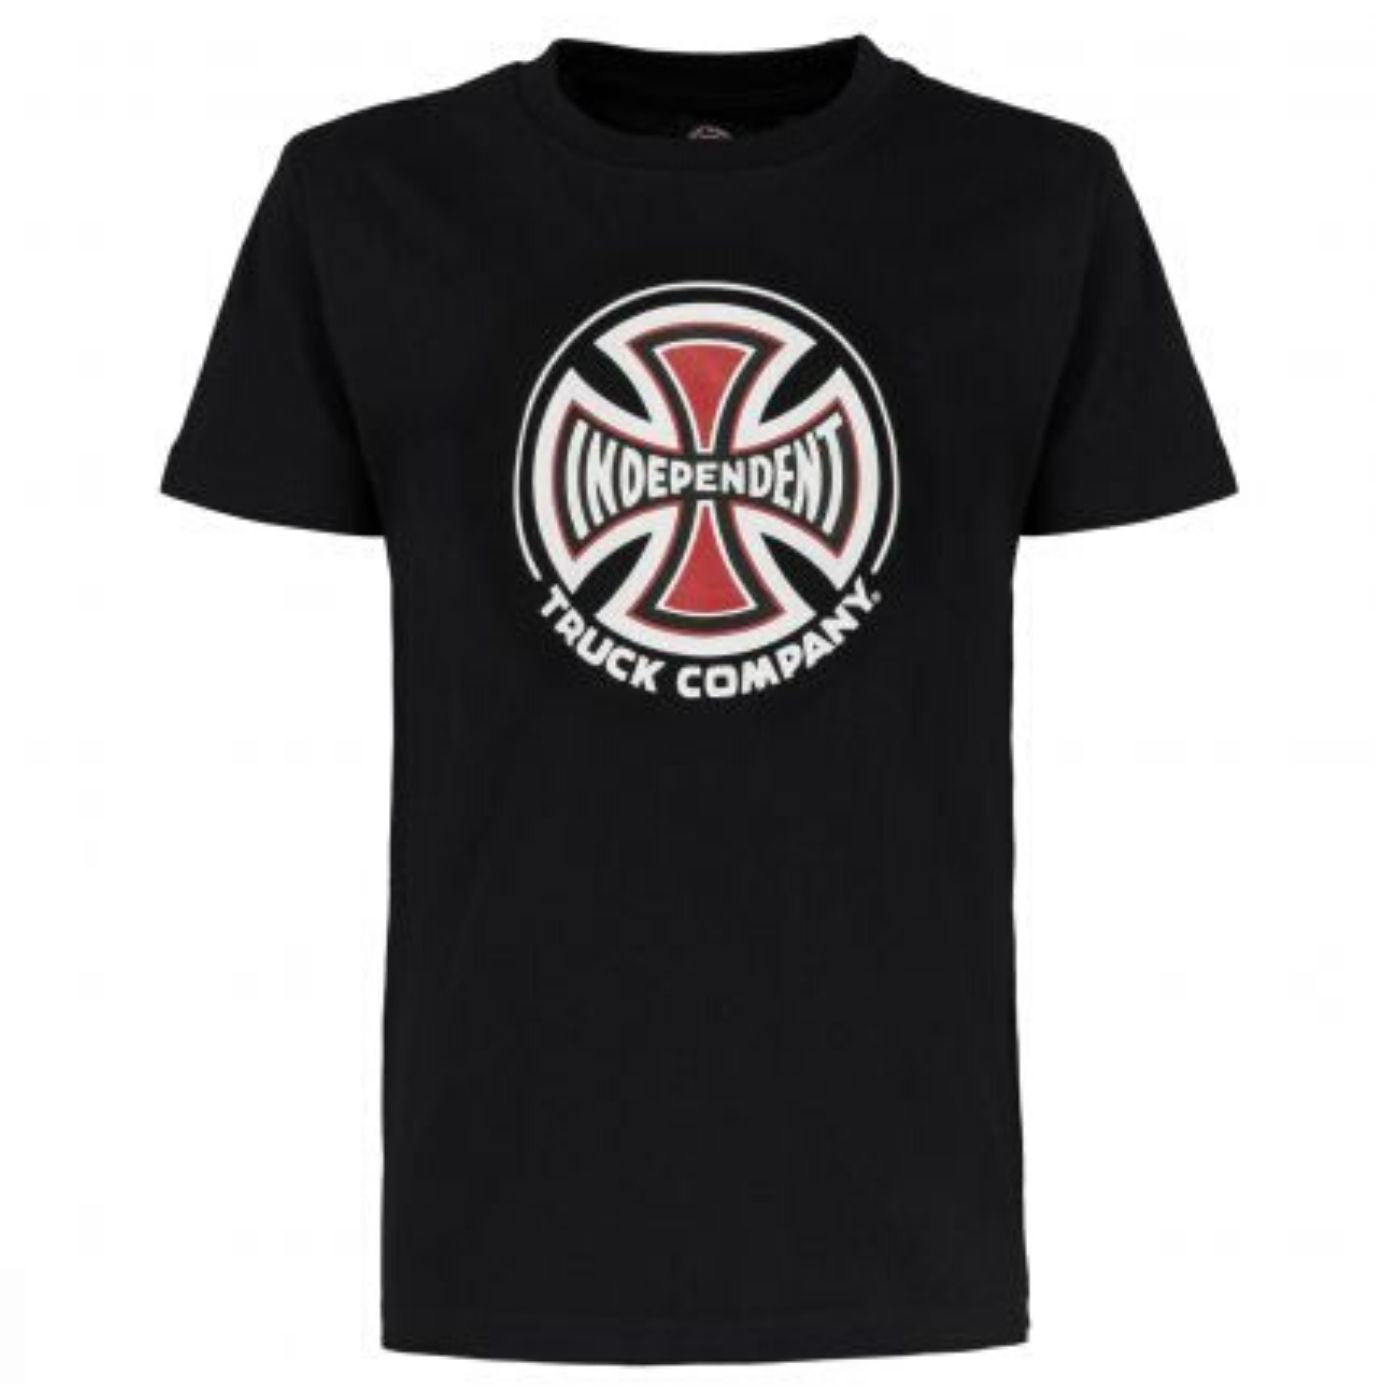 Kids Truck Co. T-Shirt Black